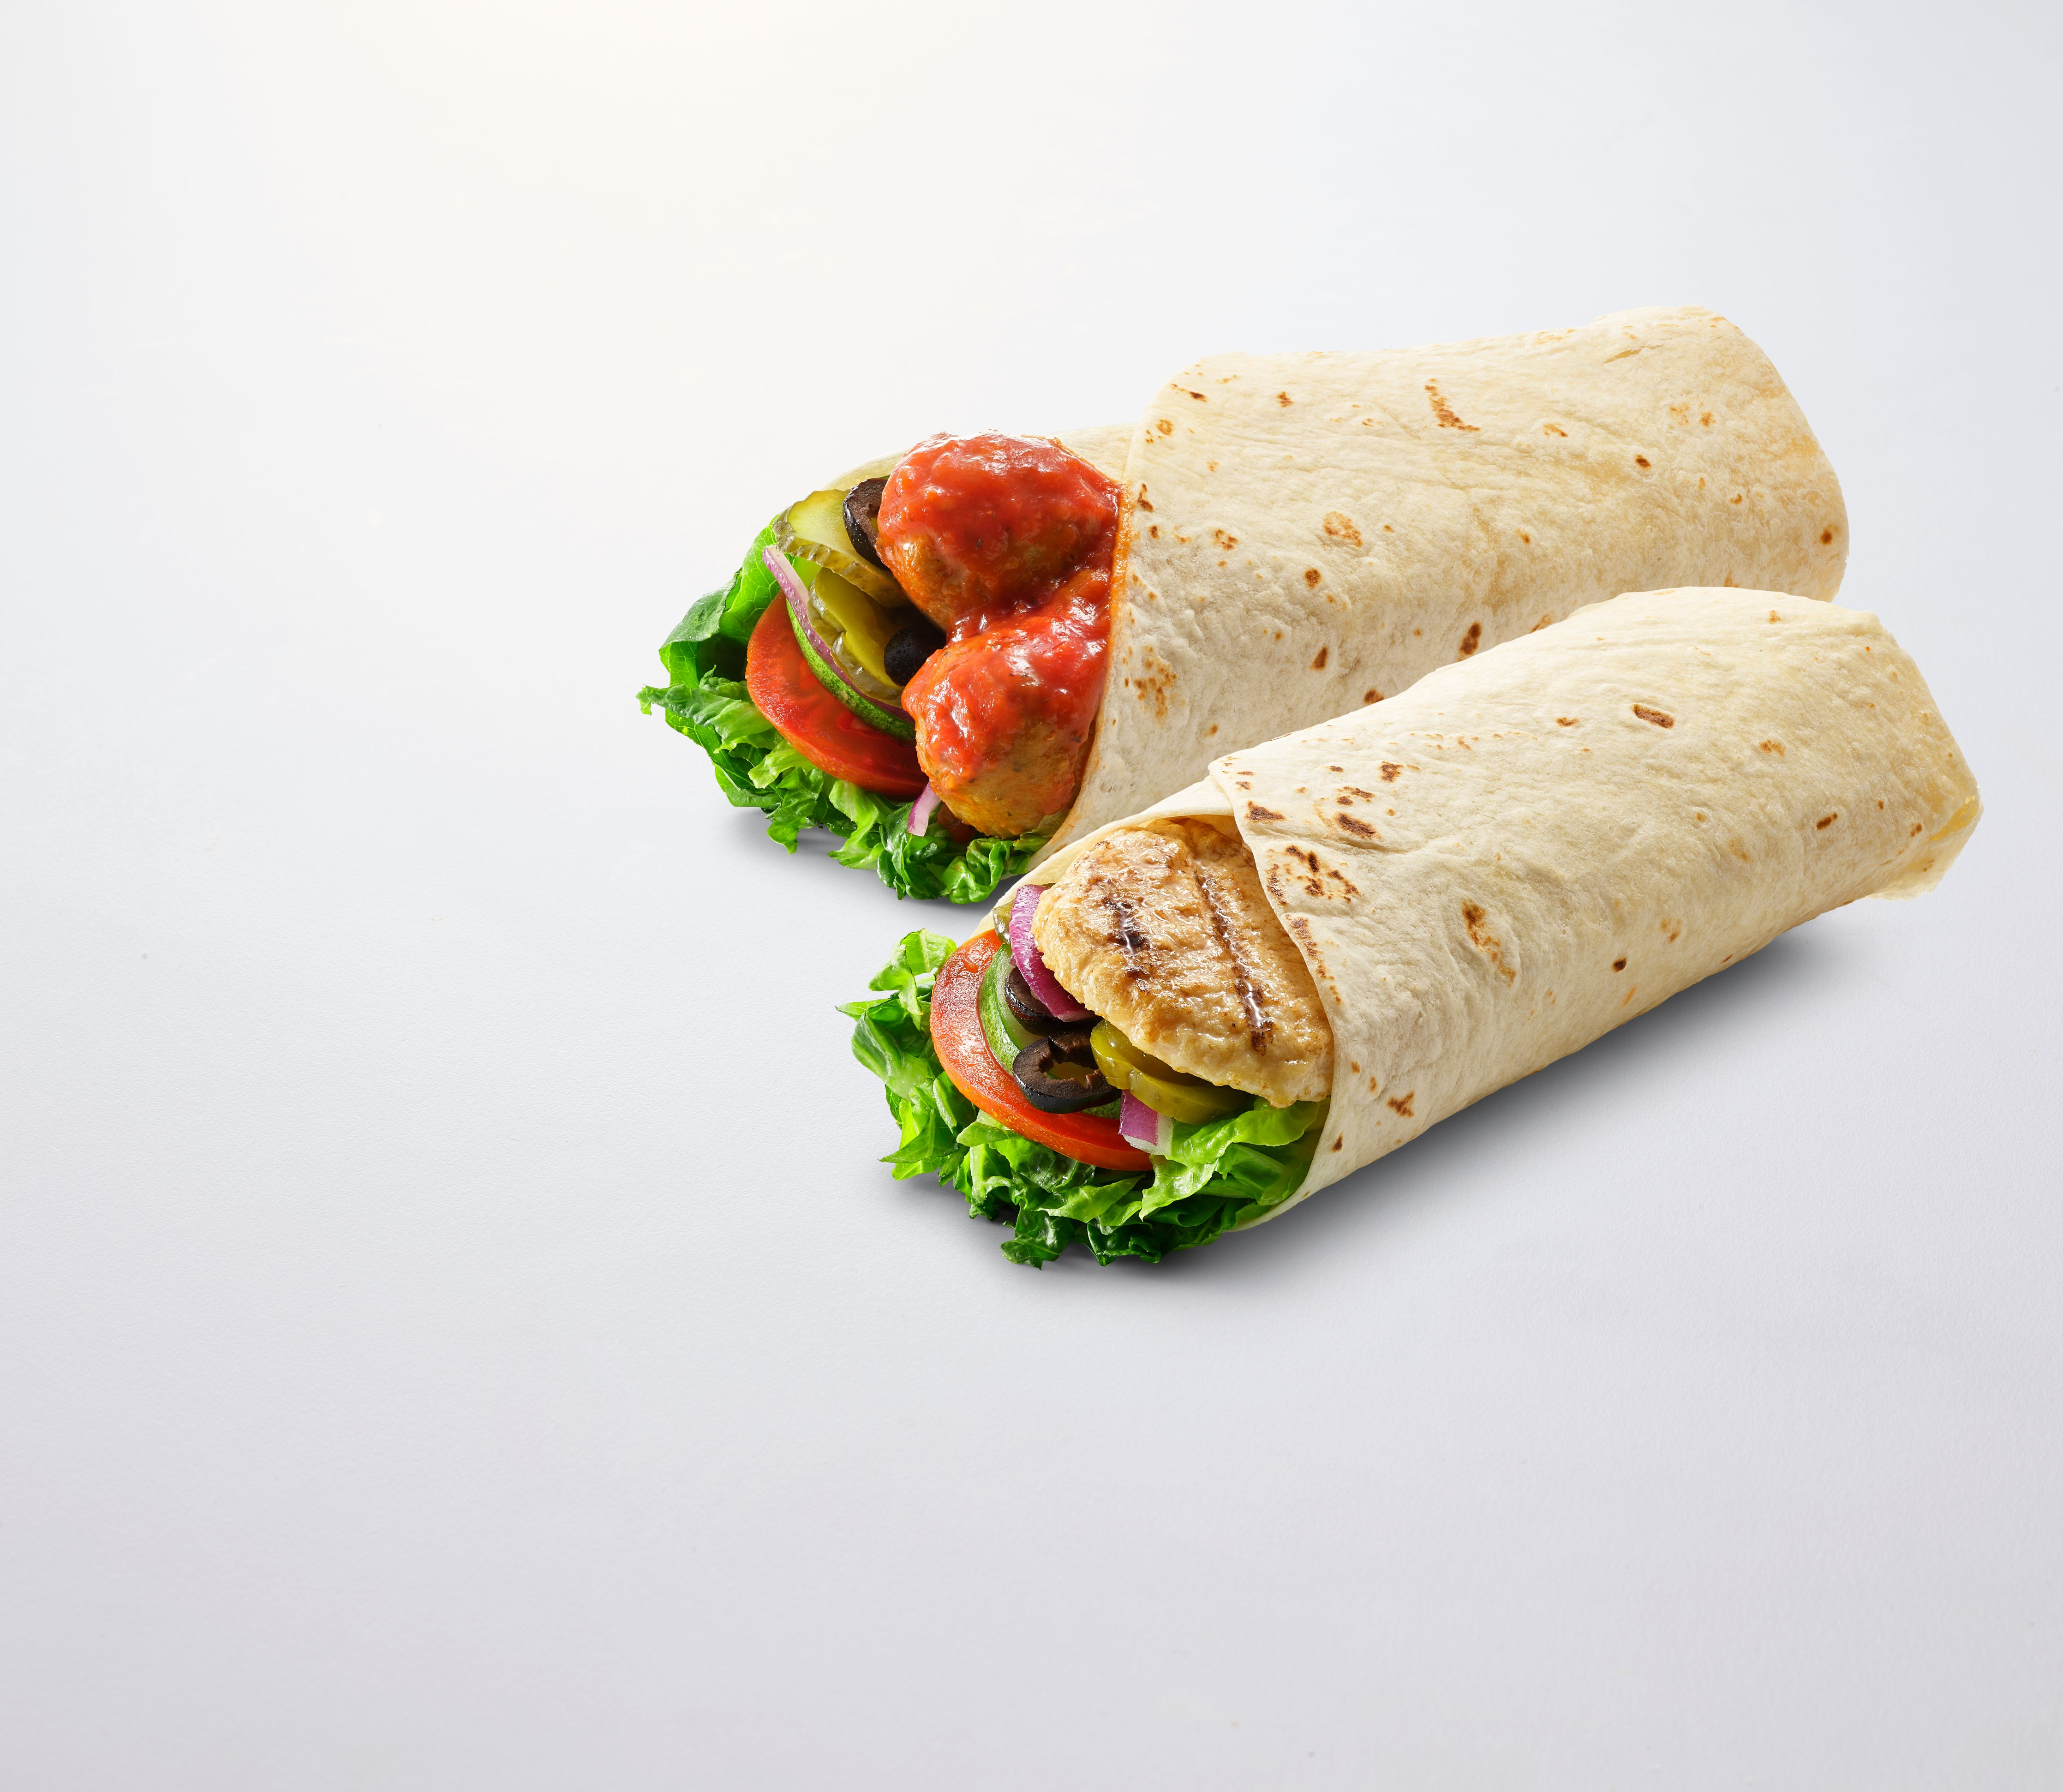 Subway (Northpoint City) - Dine, Shop, Earn